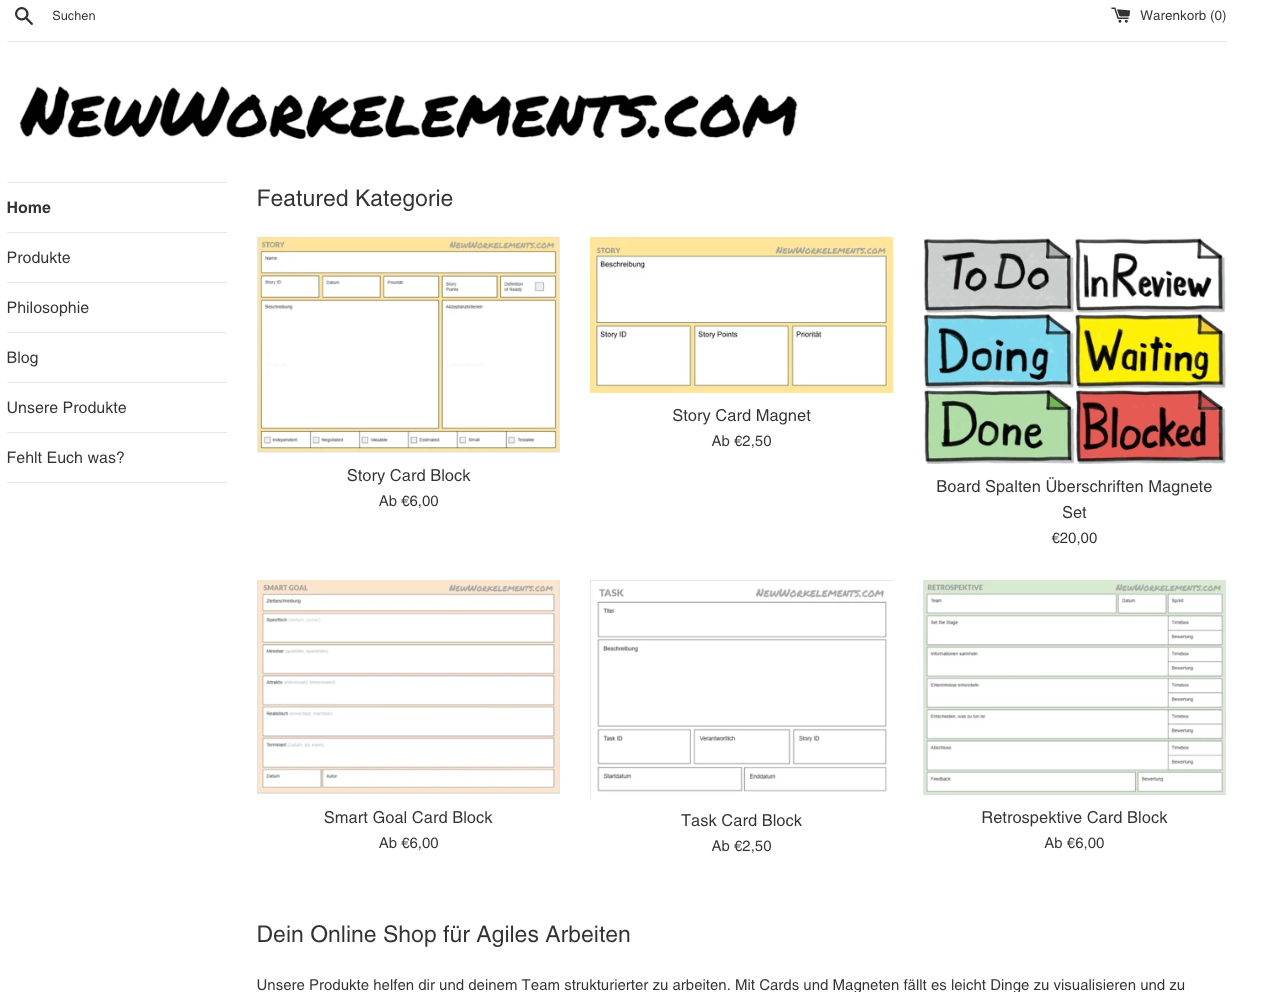 NewWorkElements - This project originated from our own unfulfilled needs while working in agile coaching contexts with other companies. We created paper cards to make physical agile boards functional. And now we set up a shop for you to also get your hands on them. Check it out at newworkelements.com!